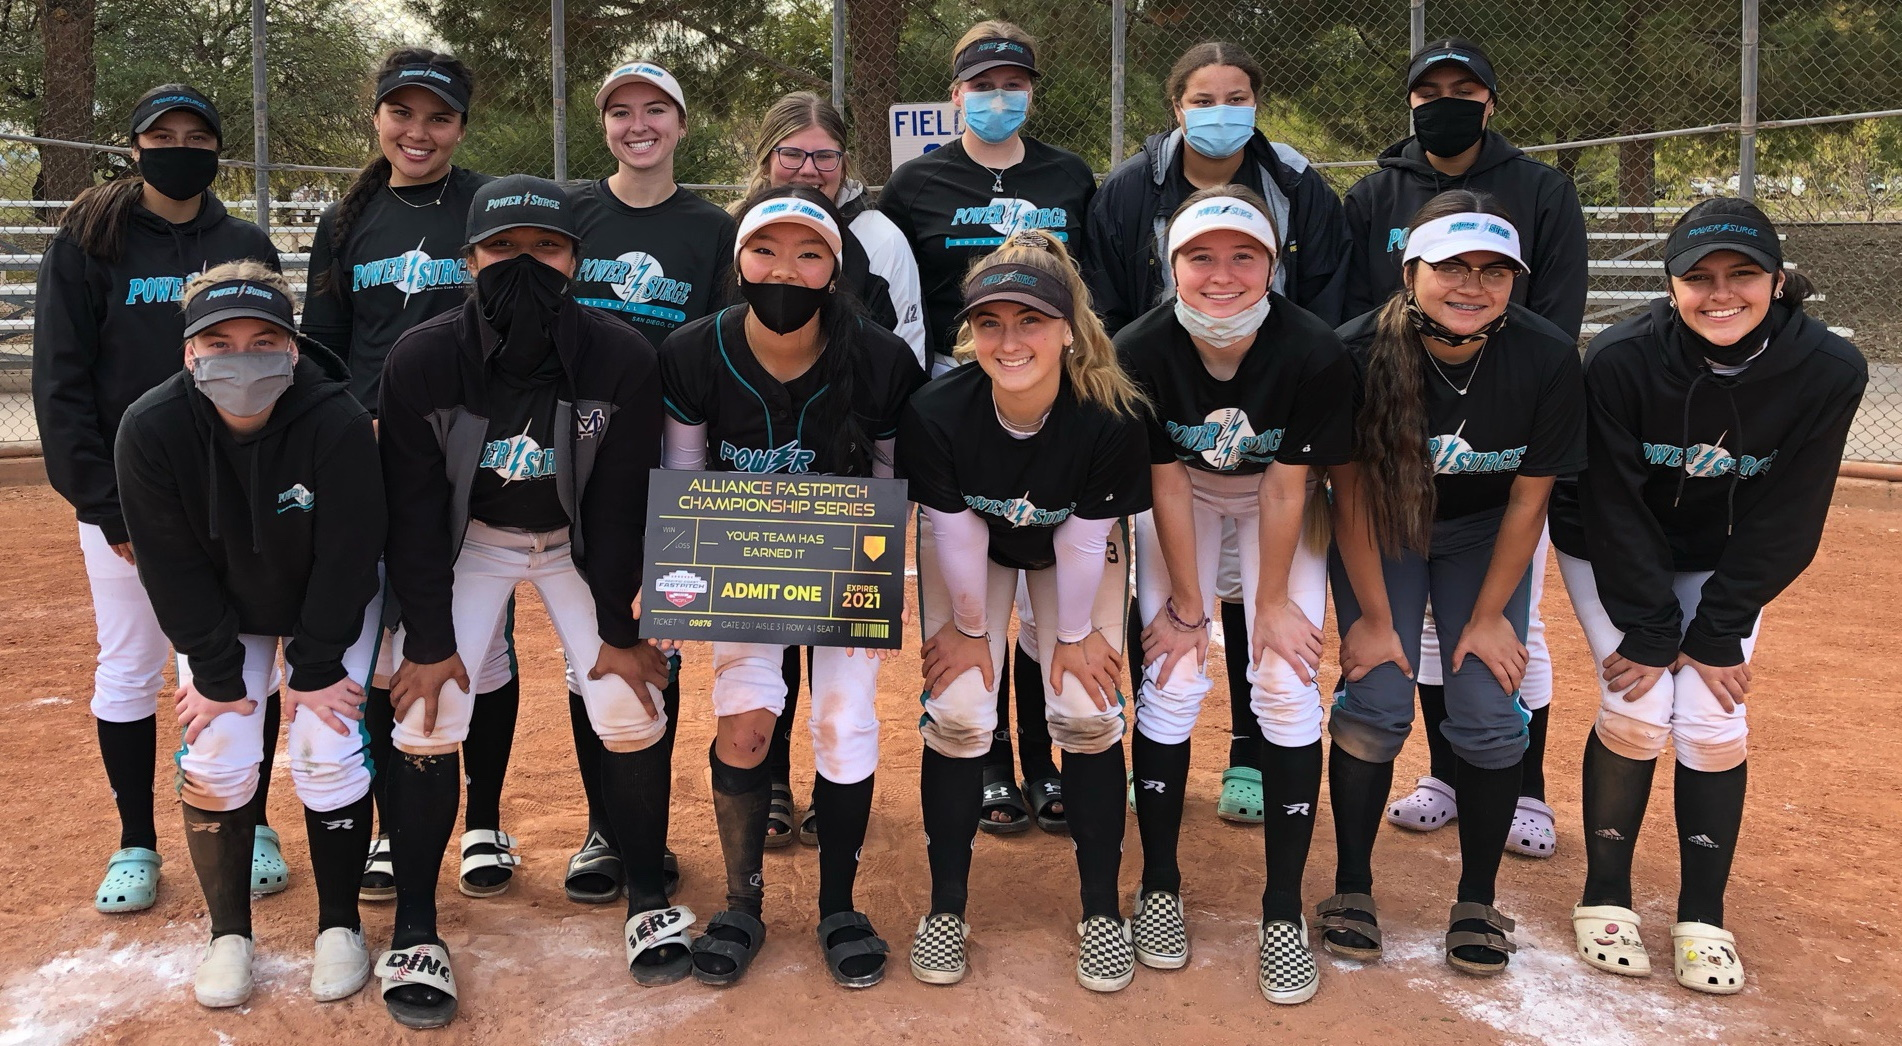 18U POWER SURGE GOLD - WALLING QUALIFIES FOR ALLIANCE NATIONAL CHAMPIONSHIP